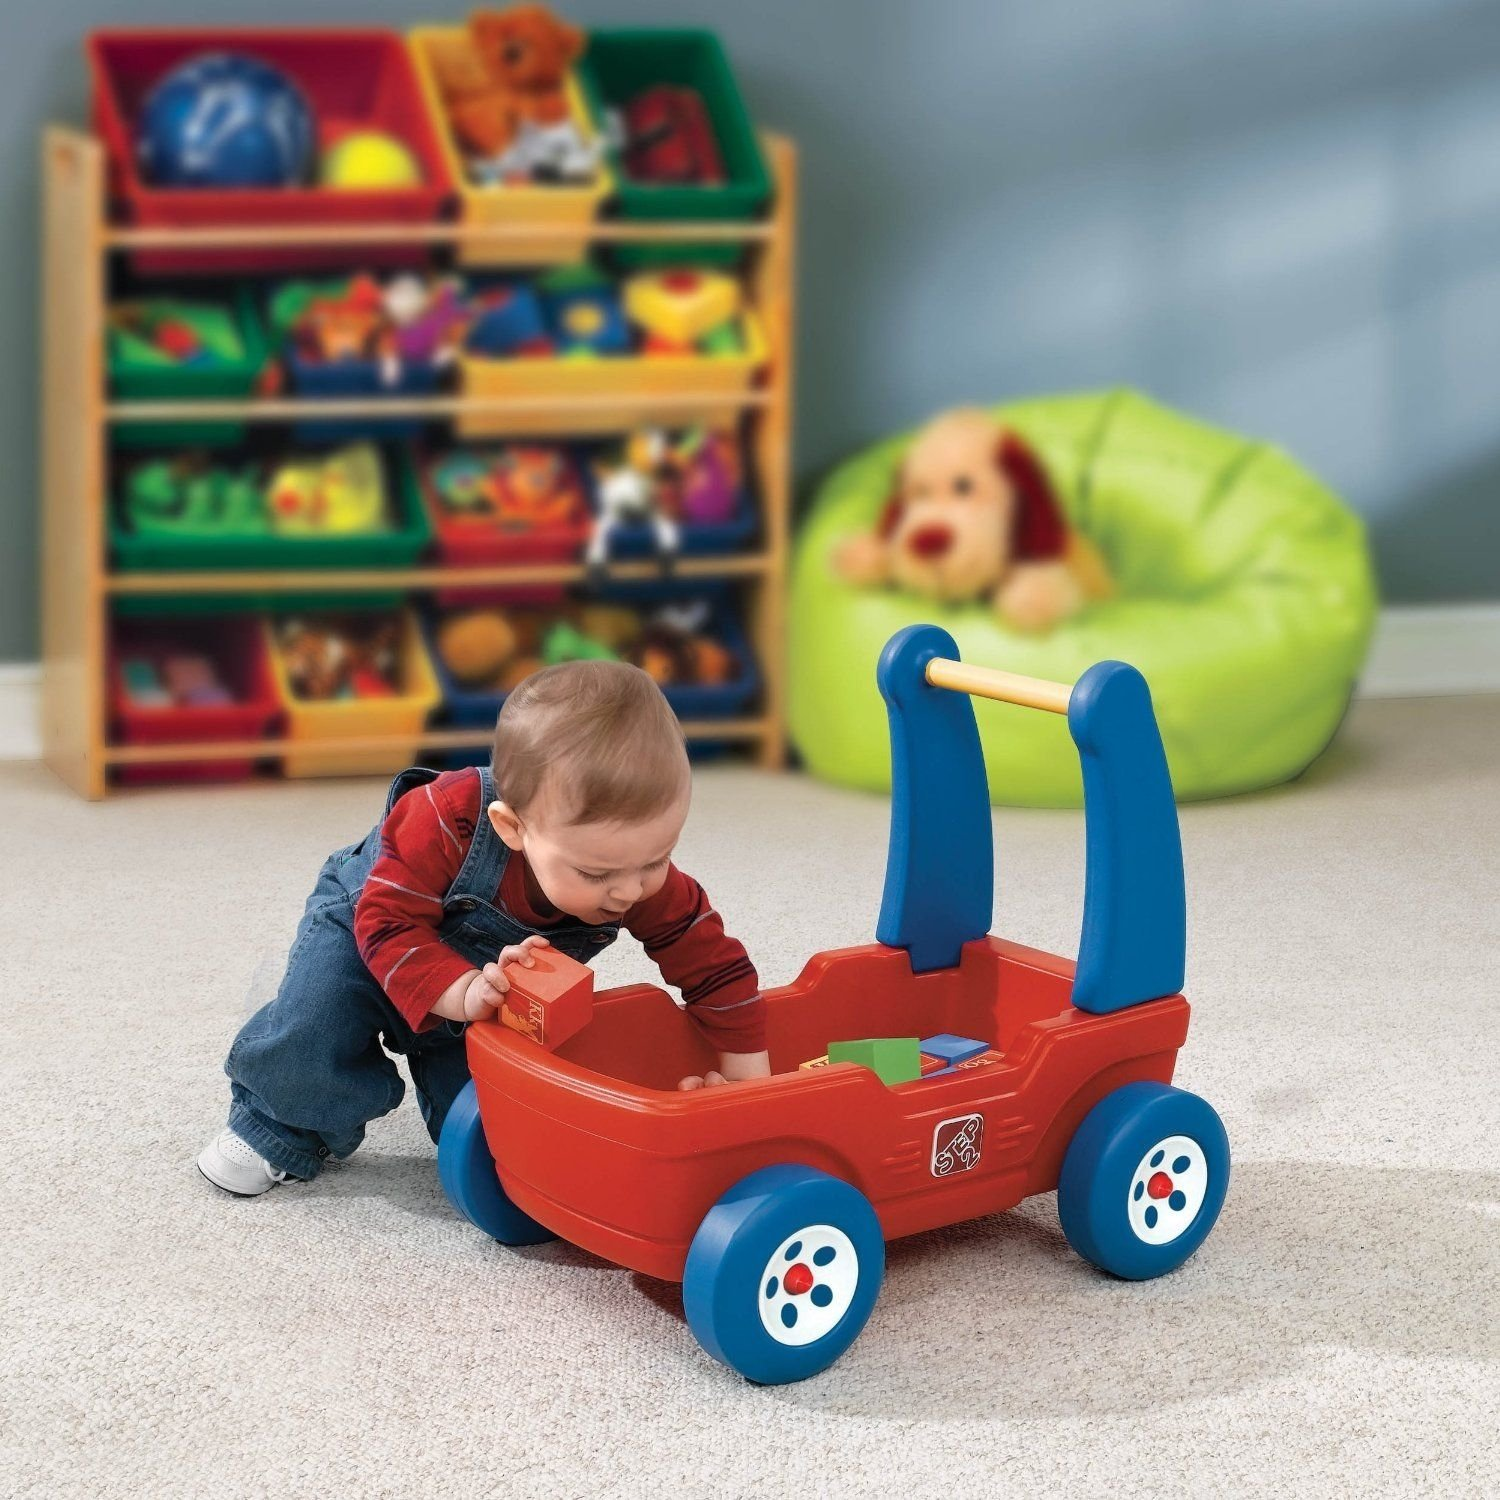 10 Fantastic Gift Ideas For 1 Year Old Boy best rated budget friendly gift ideas for one year old boys first 5 2020